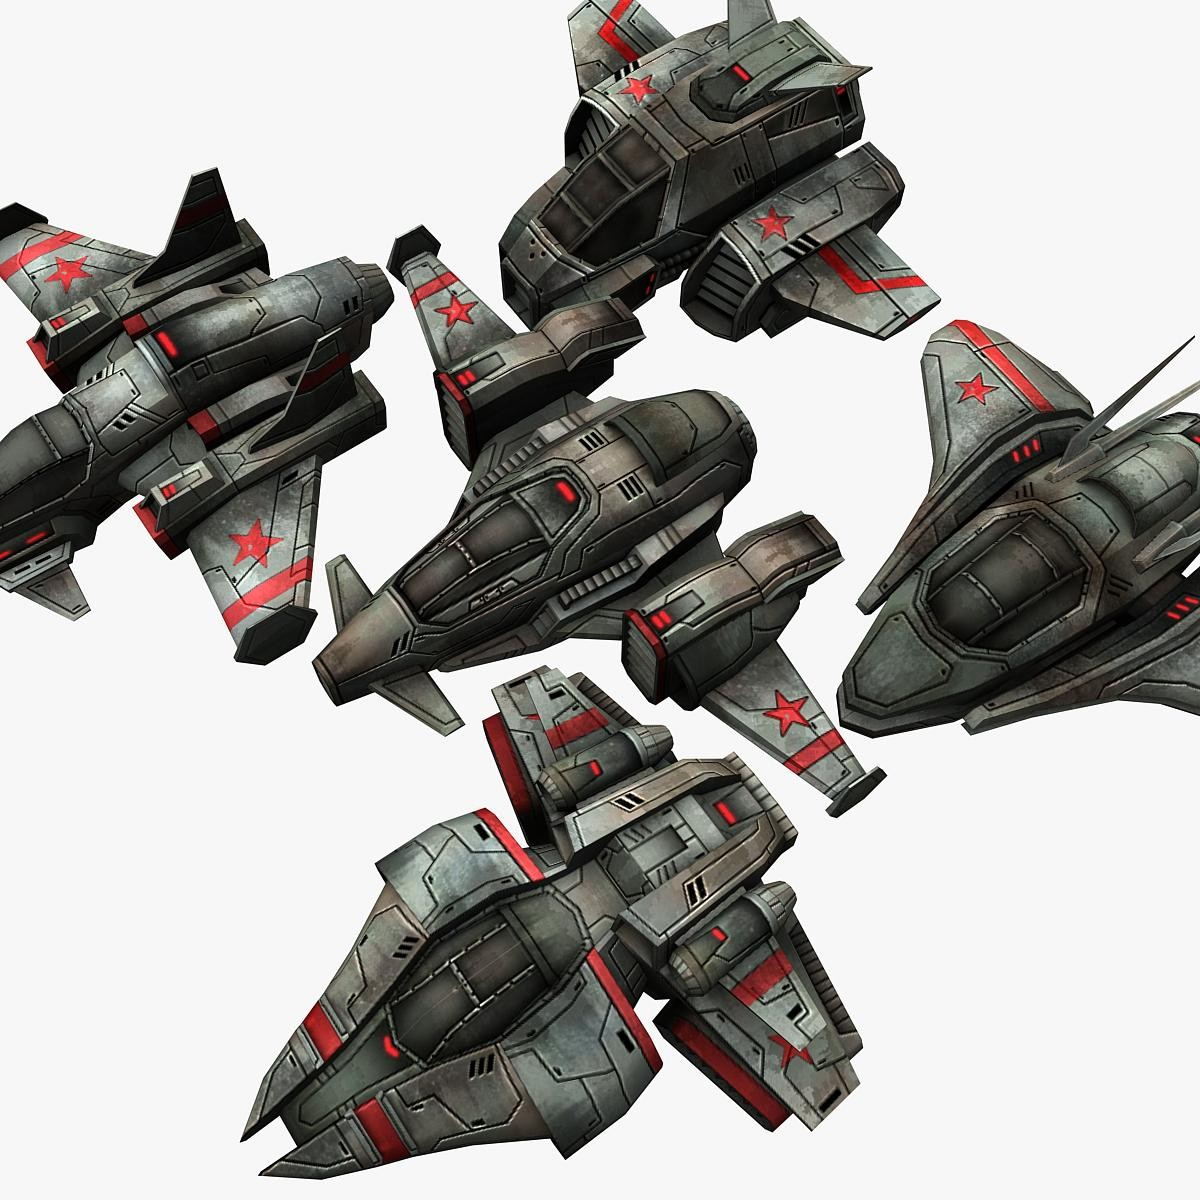 5_space_destroyers_preview_0.jpg